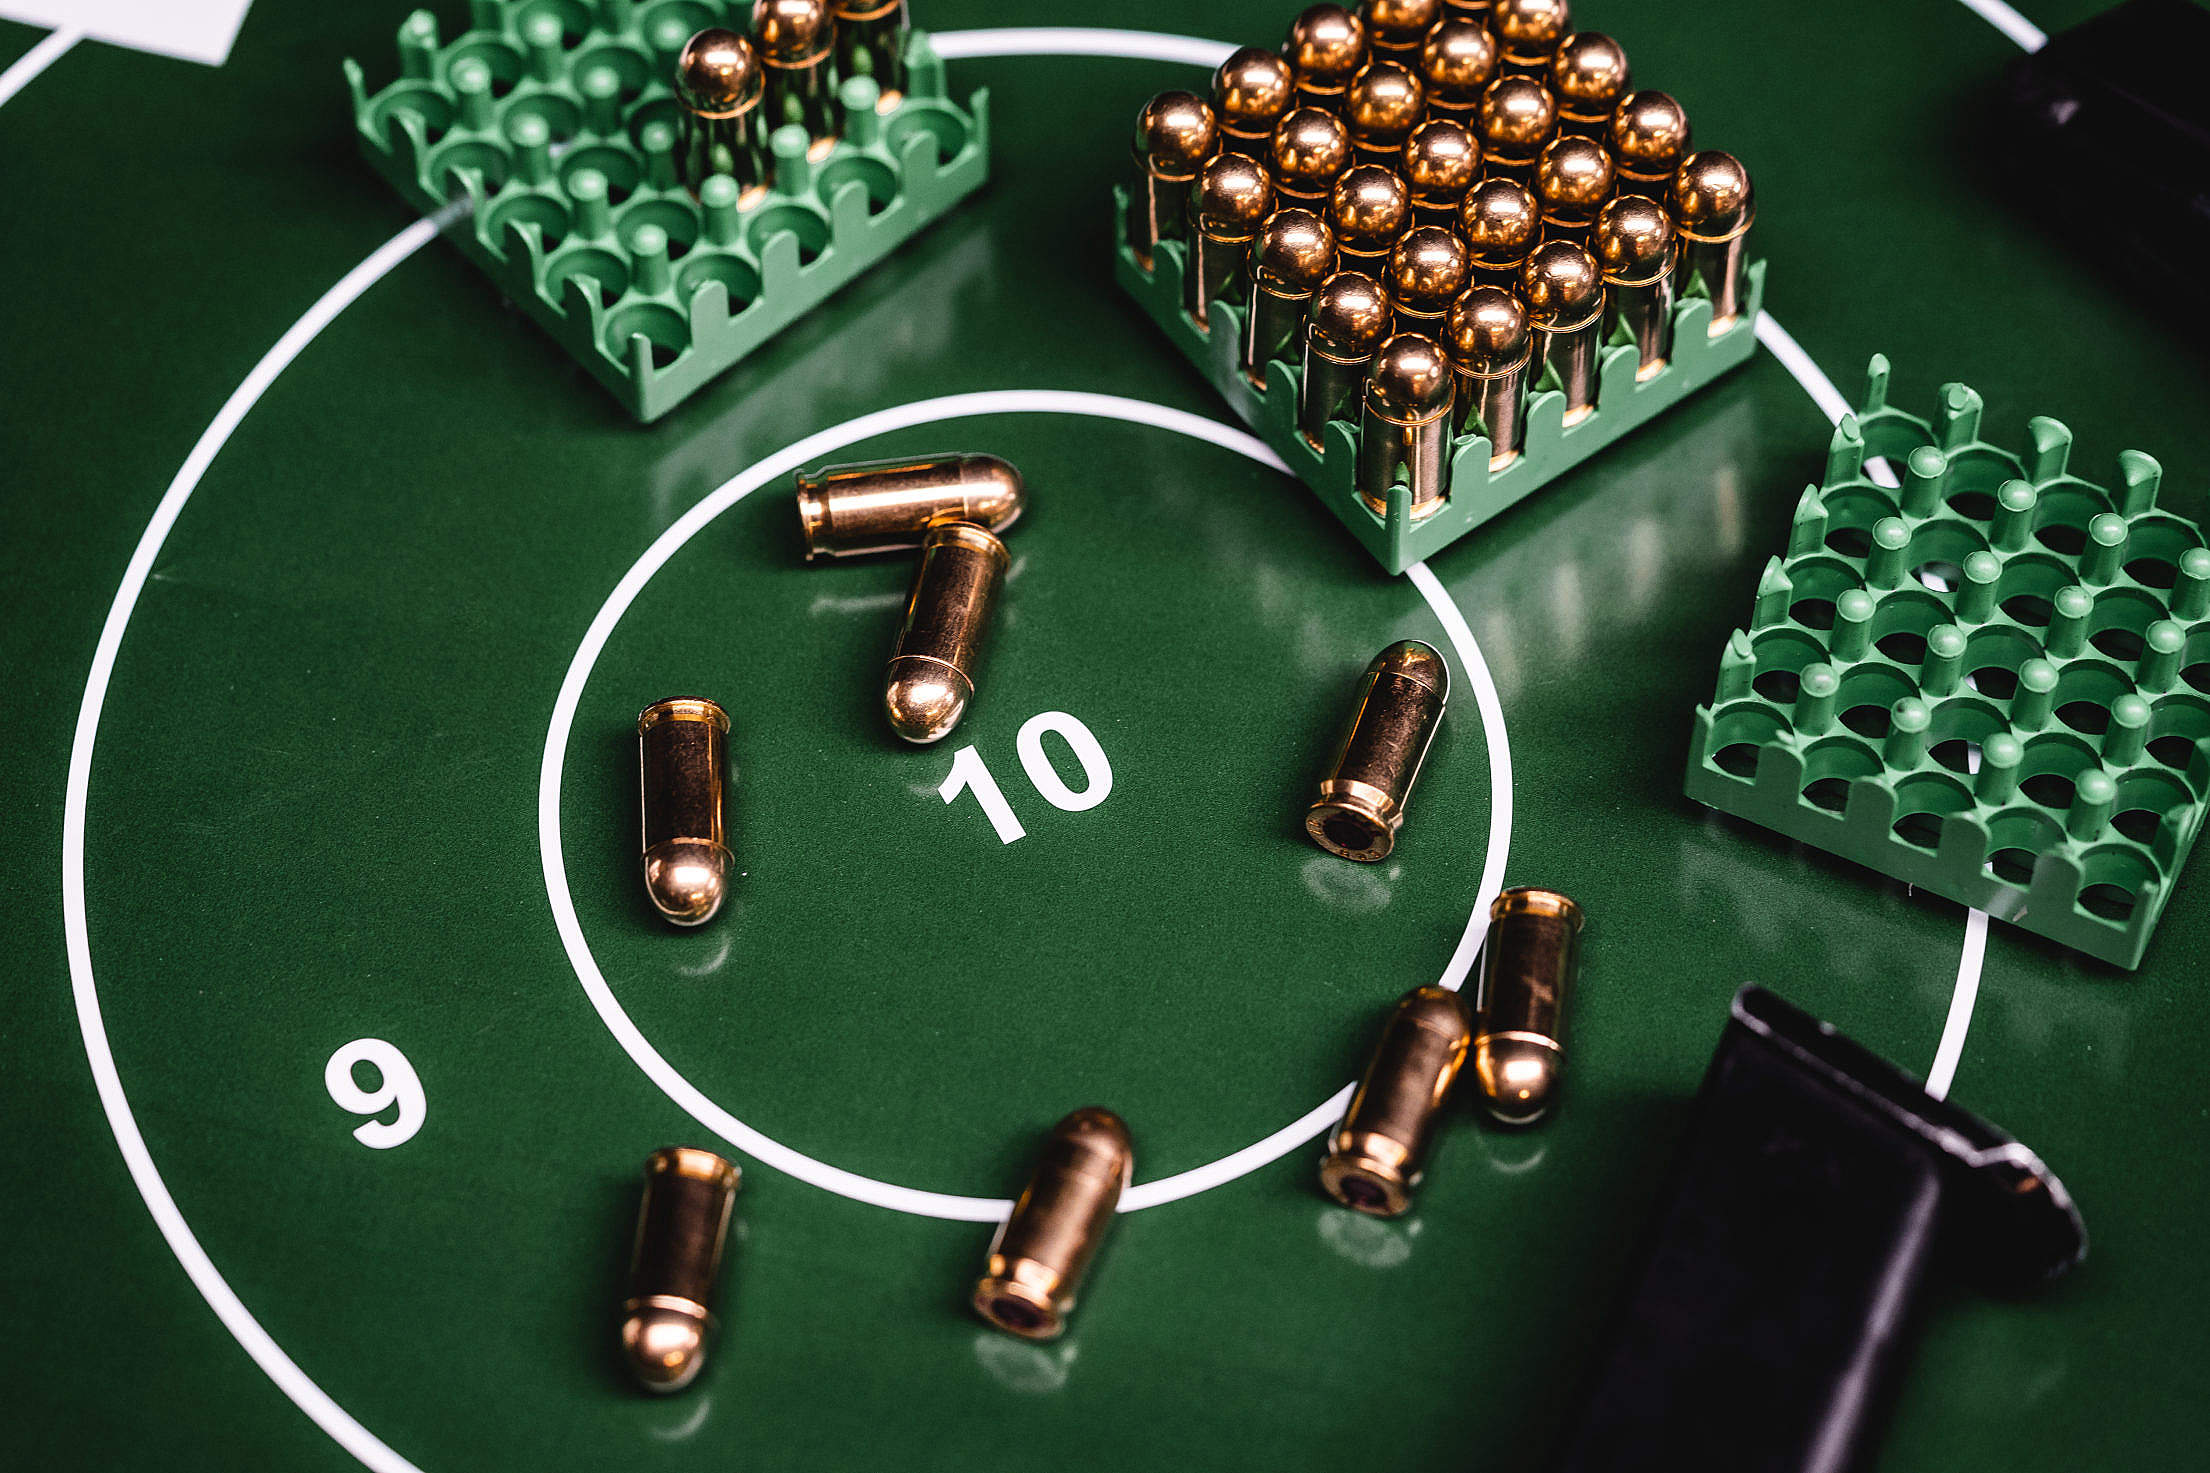 Green Shooting Target with a Lot of 9mm Ammunition Free Stock Photo